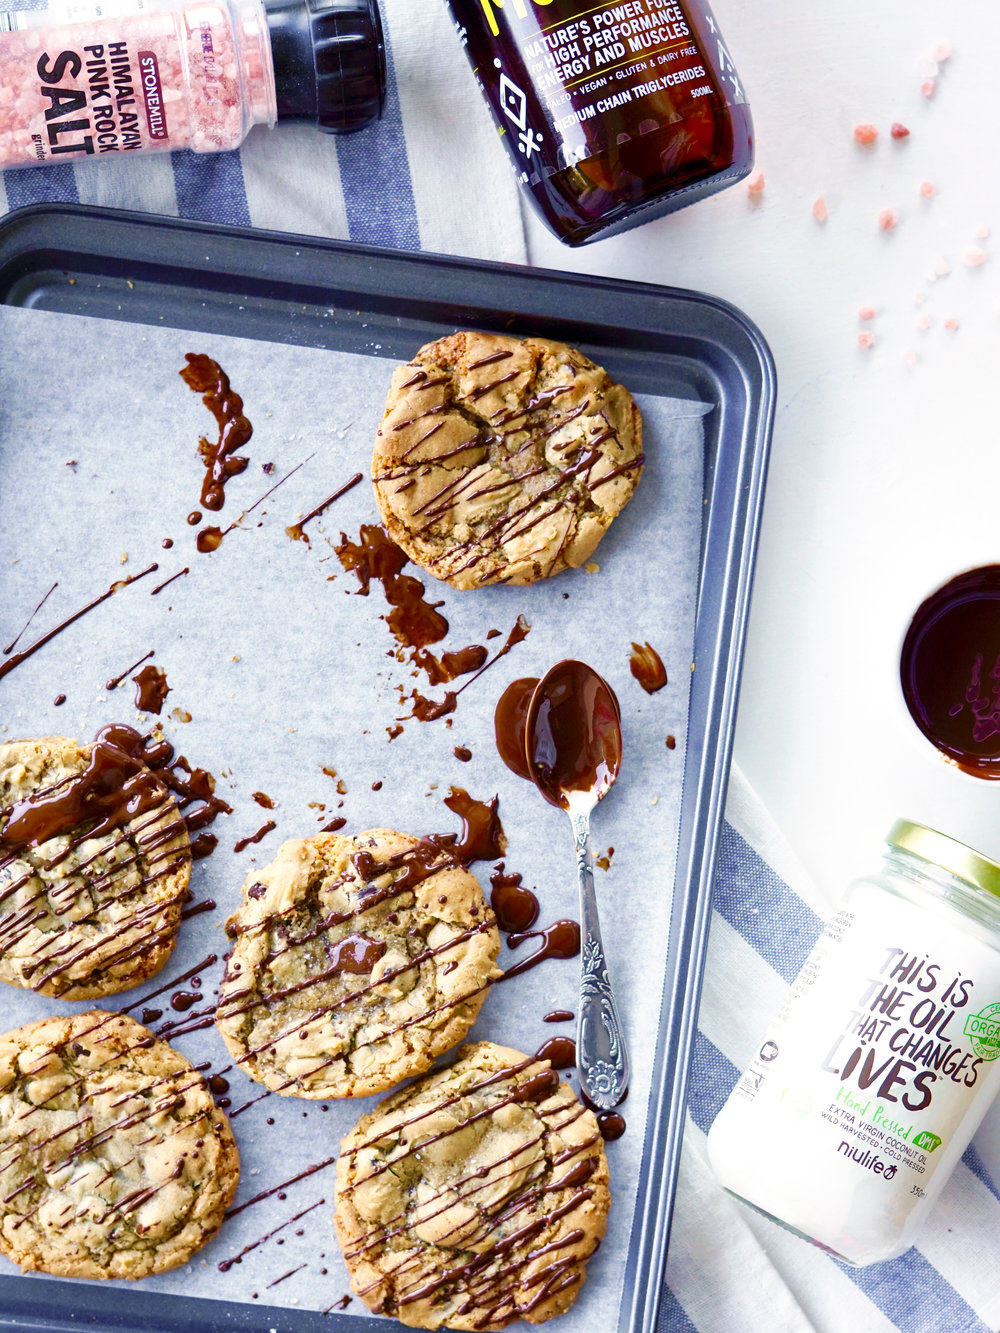 keto cookies health food project food photography